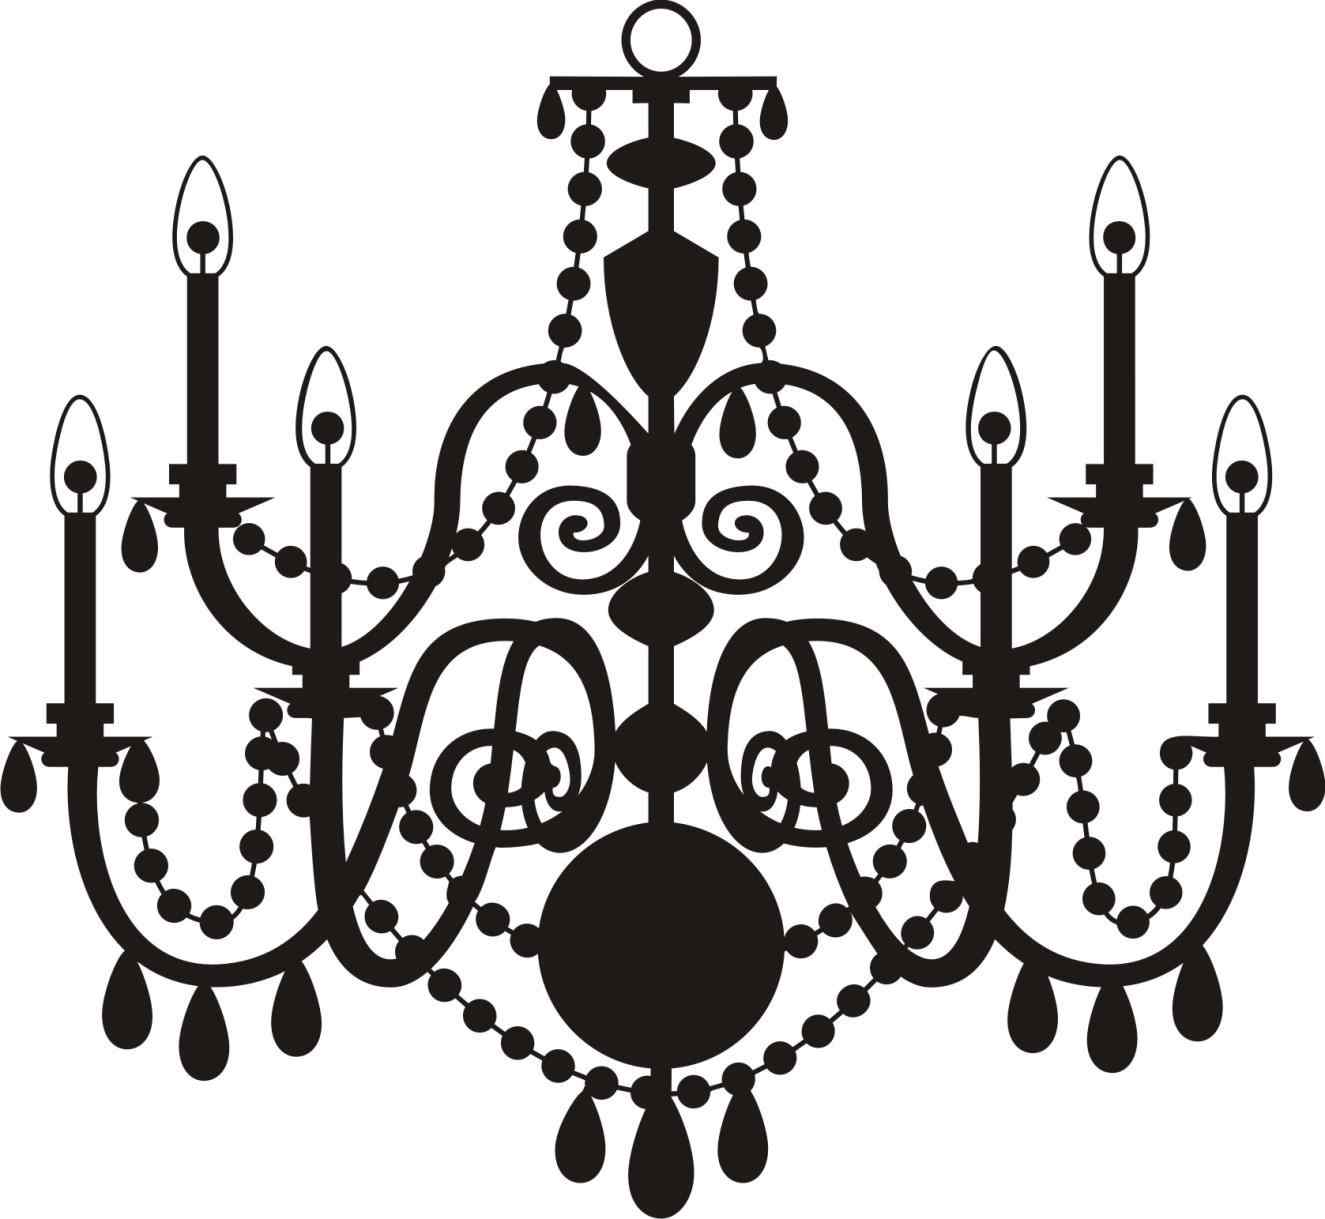 White chandelier silhouette at getdrawings free for personal 1325x1219 chandelier silhouette clip art jescatfo aloadofball Images